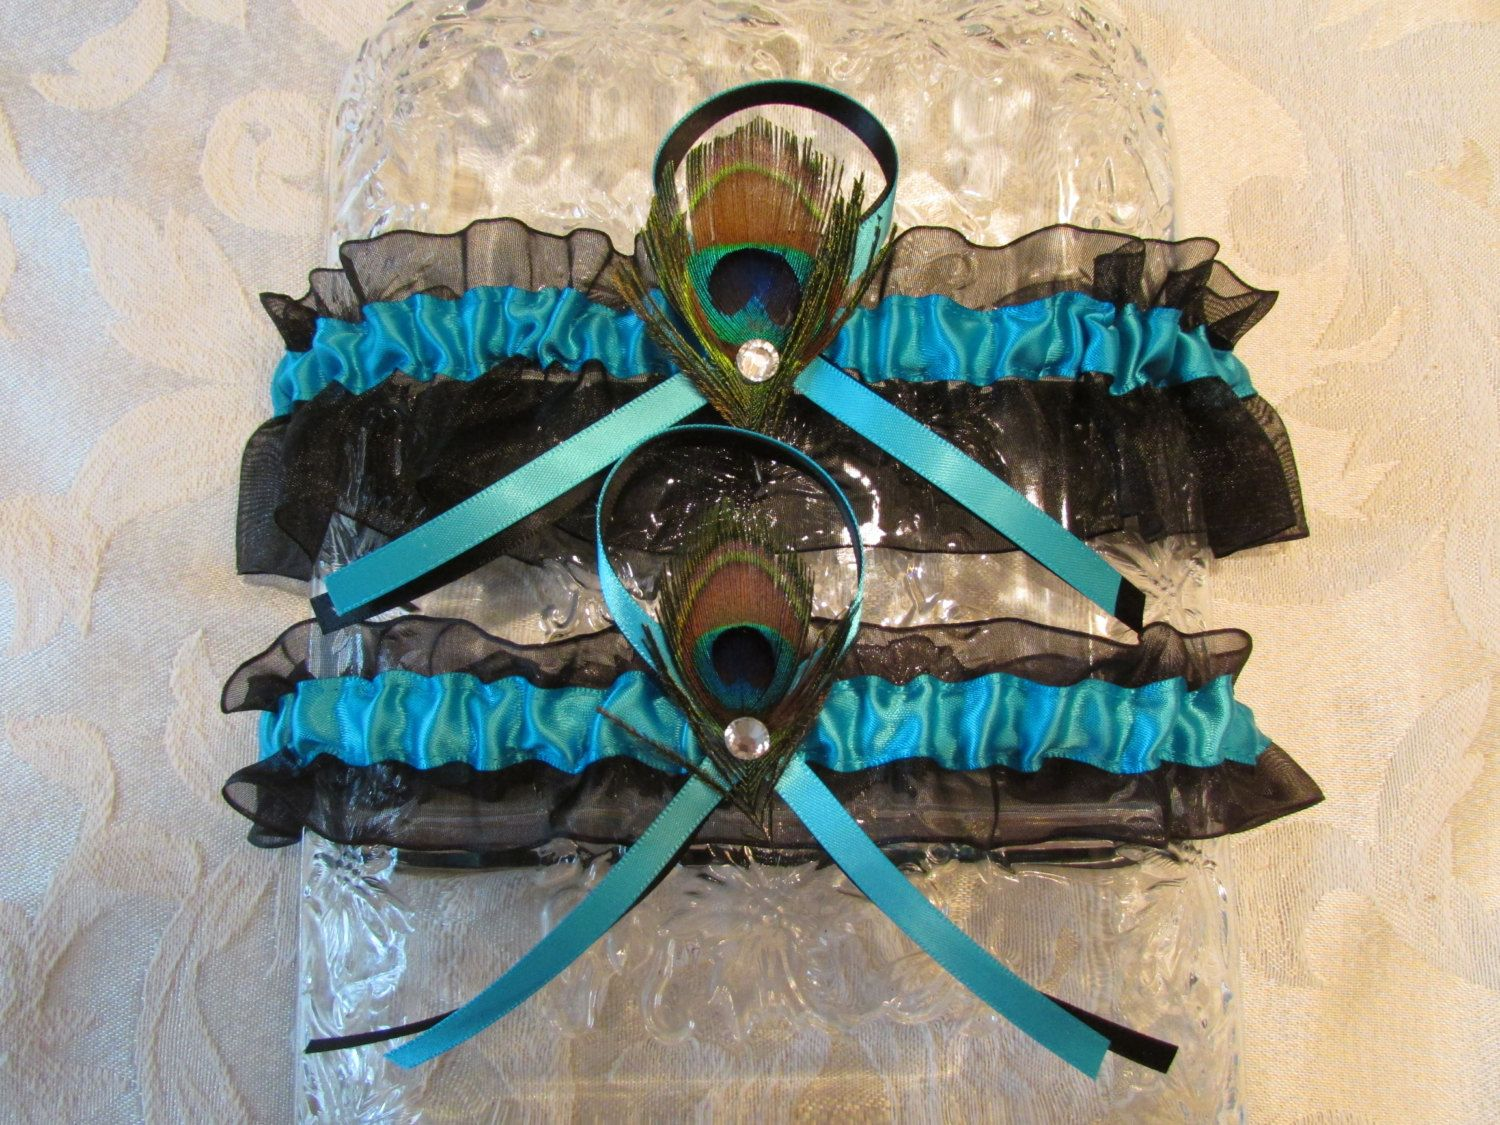 PLUSH PEACOCK WEDDING Garter Turquoise And Black With Rhinestones Set Bridal Prom By GarterPrincess On